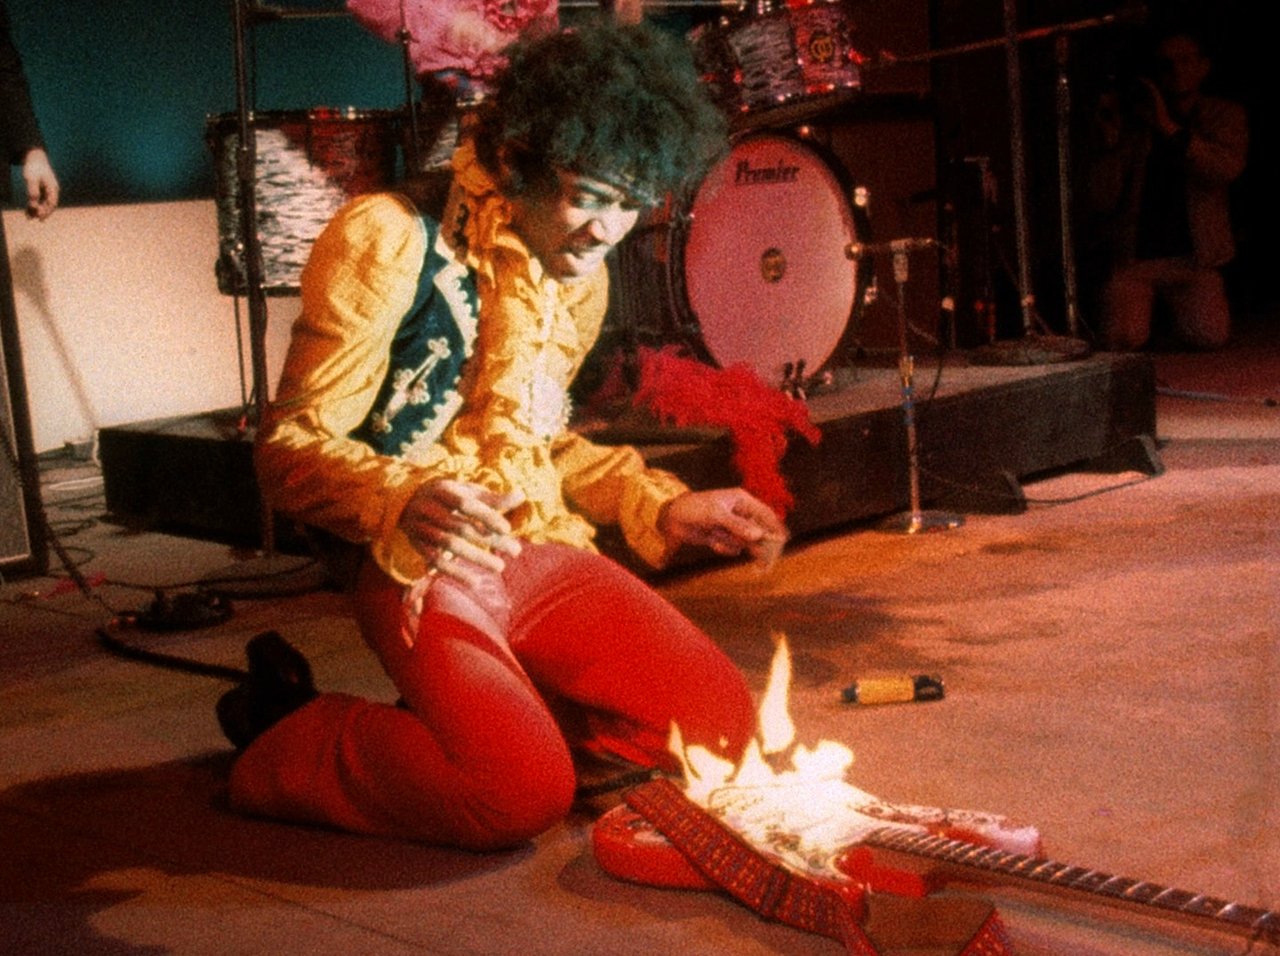 http://historythings.com/wp-content/uploads/2015/12/Jimi-hendrix-guitar-on-fire-monterey-live-1967.jpg